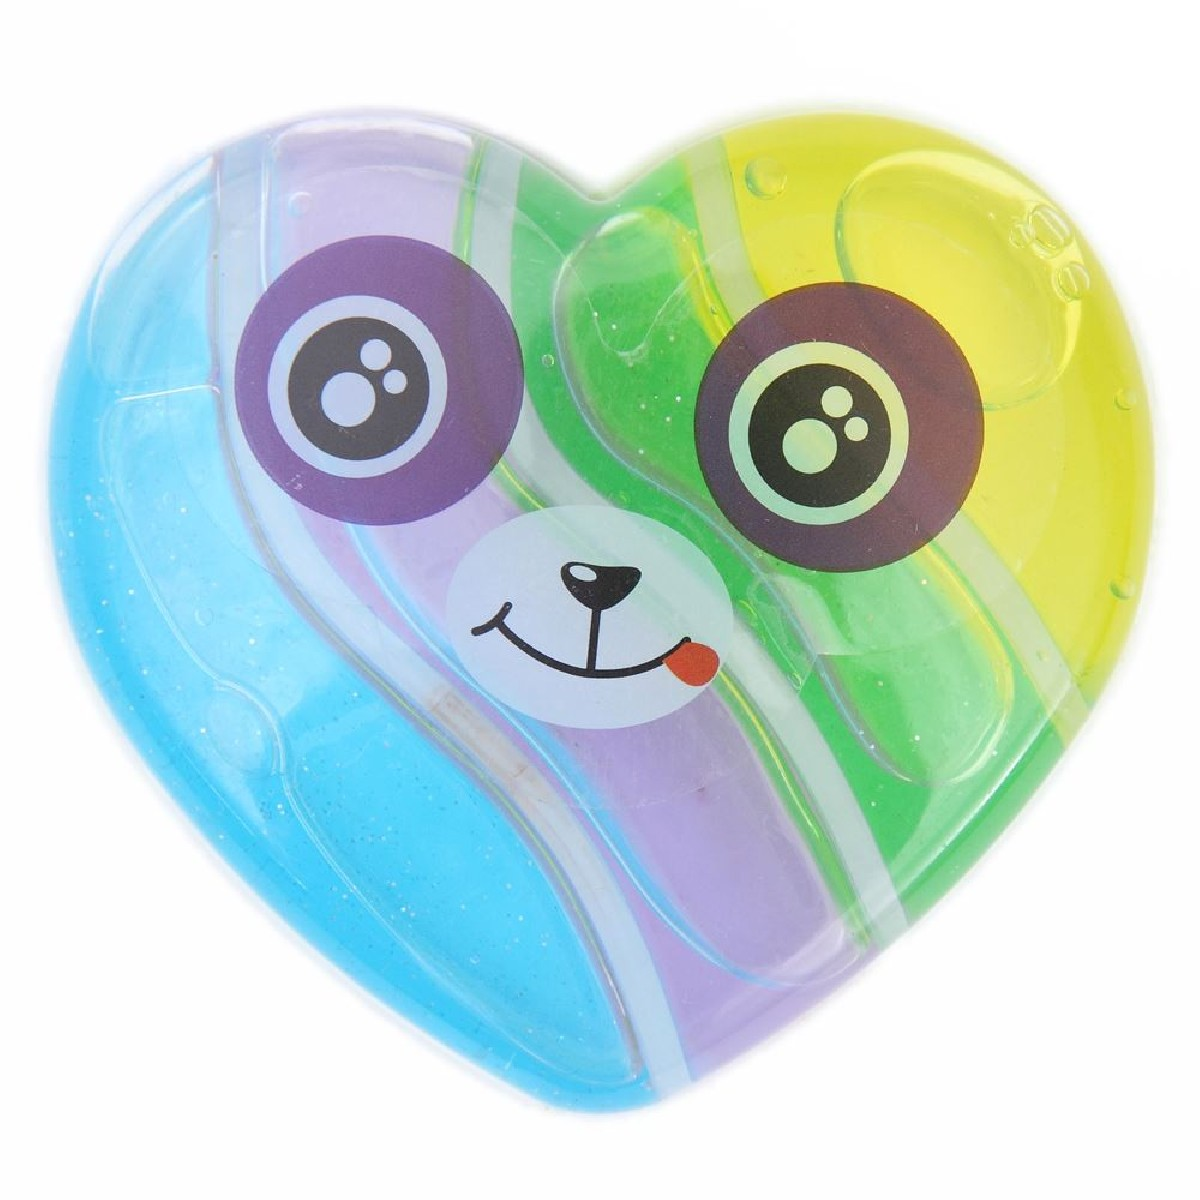 4 color blue purple green yellow slime with heart face case mud clay ...